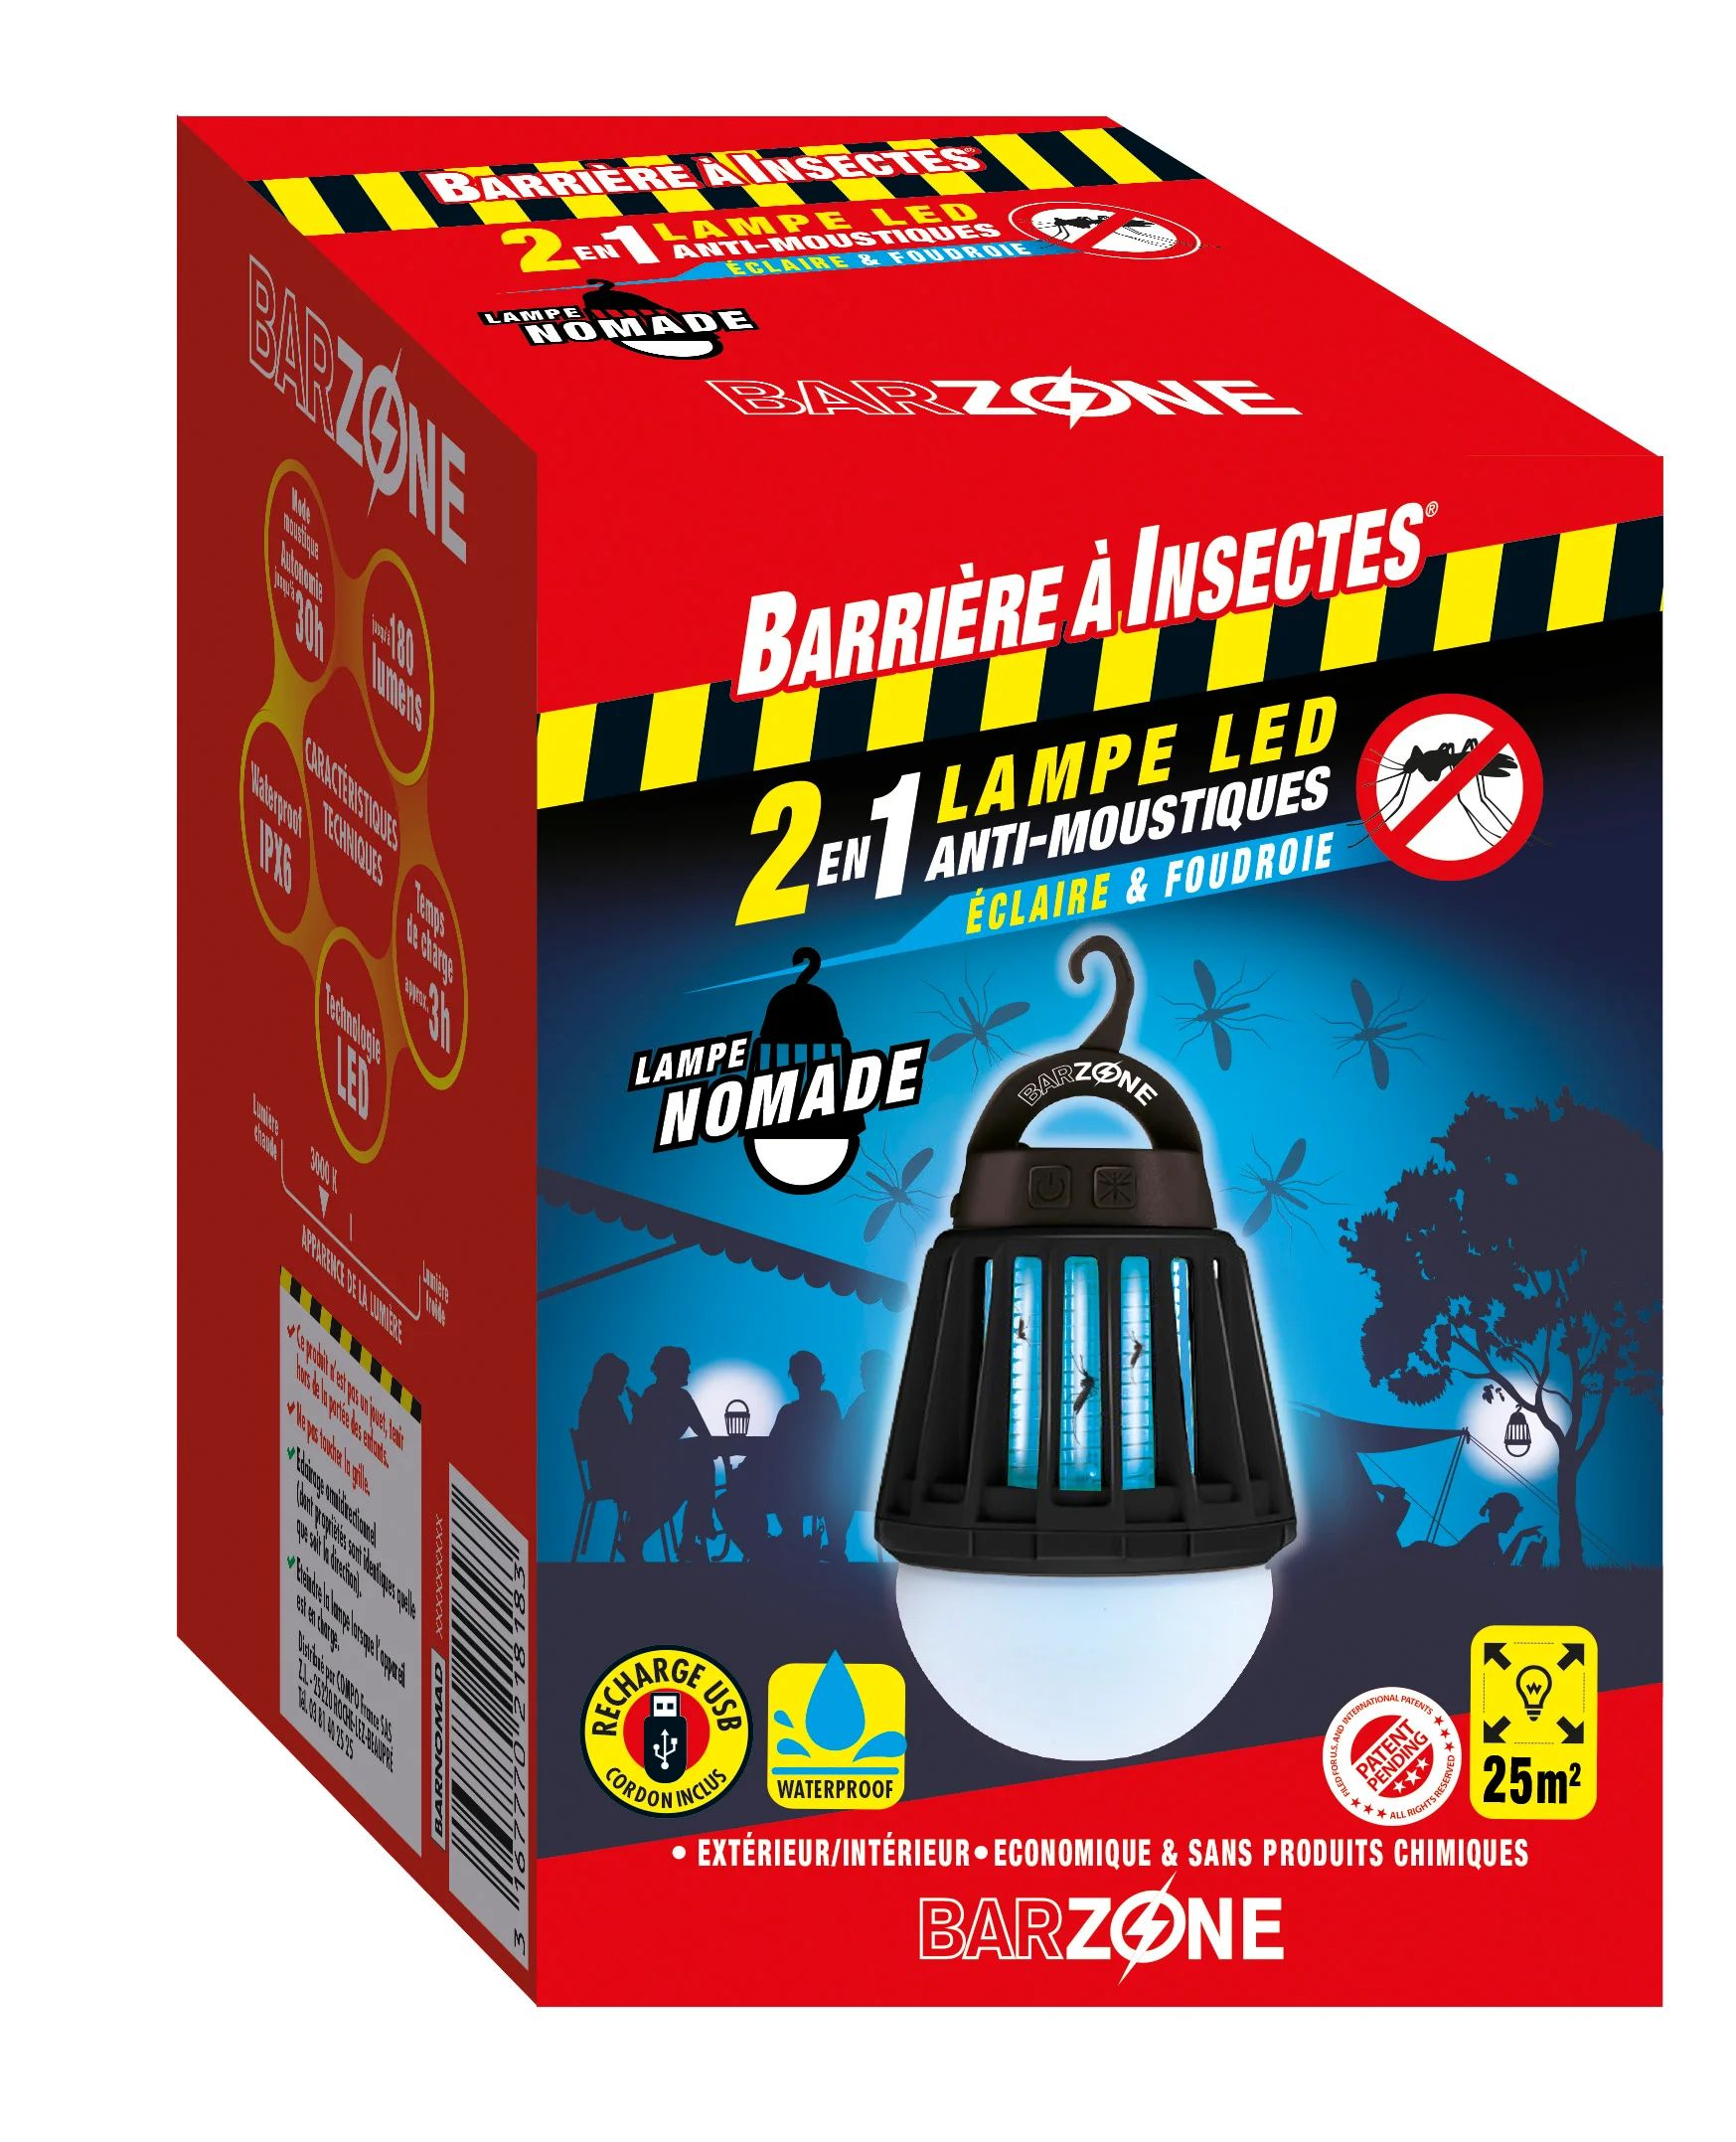 Lampe Anti Moustiques Barriere A Insectes Barzone Leroy Merlin